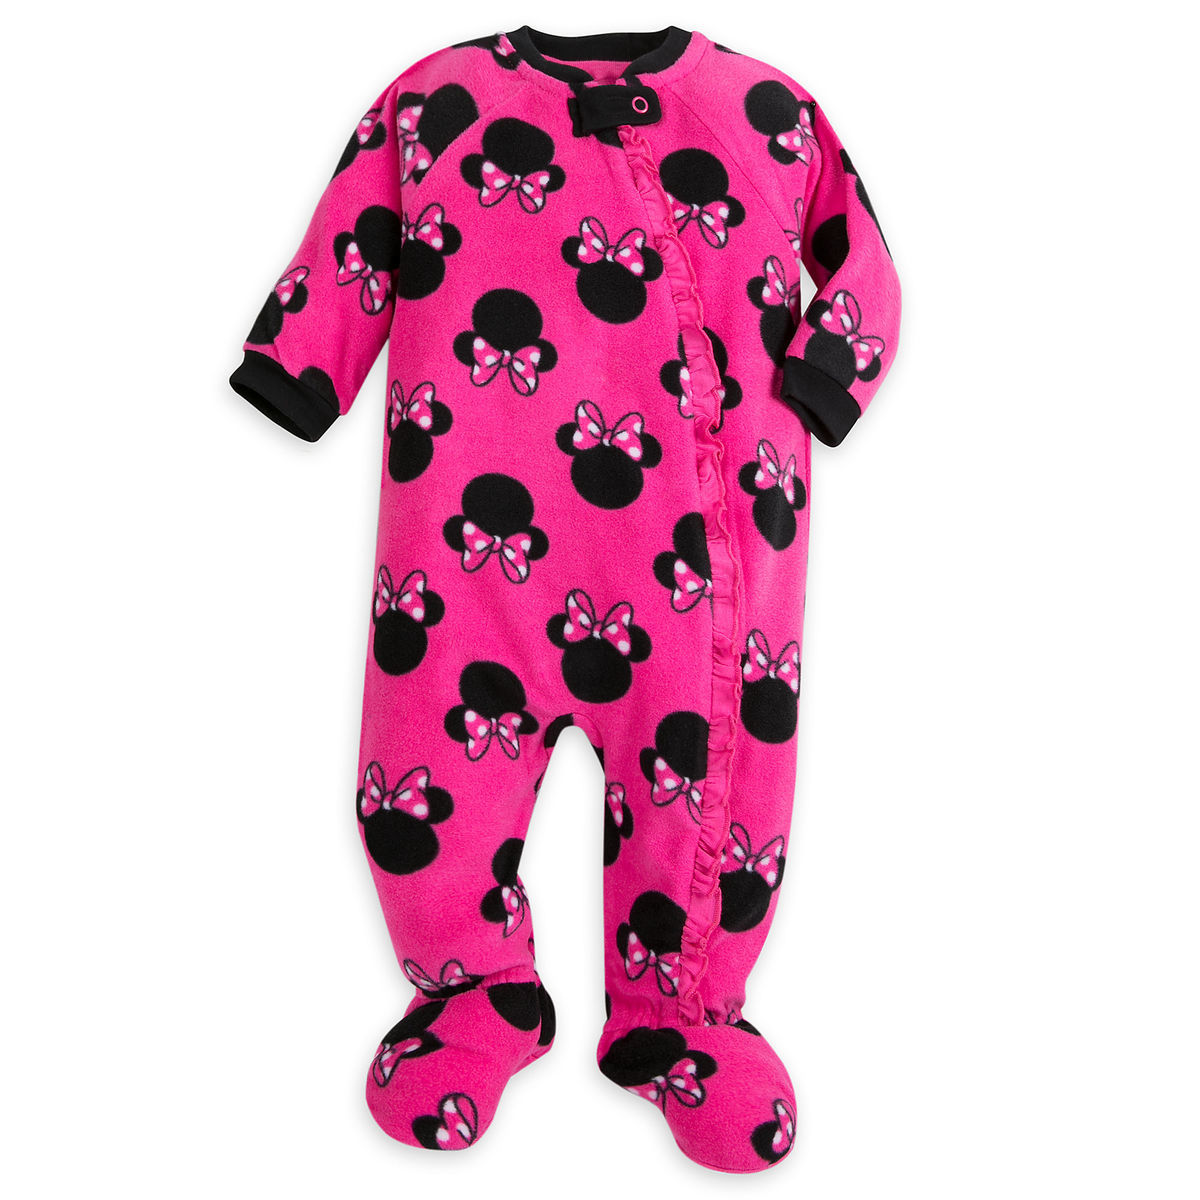 b015e31d9614 Minnie Mouse Blanket Sleeper - Baby